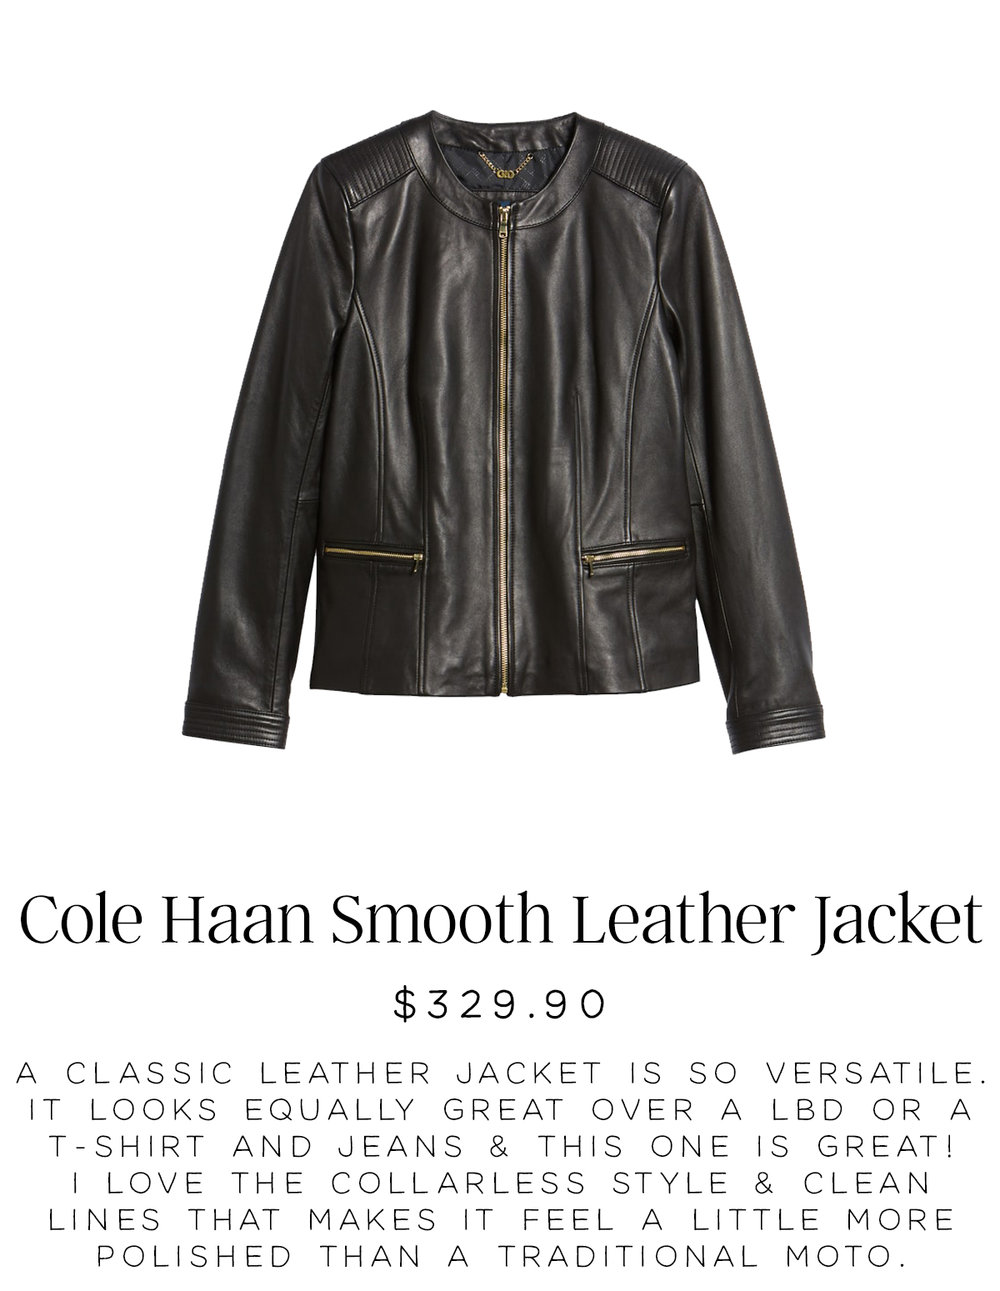 nordstrom-anniversary-sale-cole-haan-leather-jacket.jpg